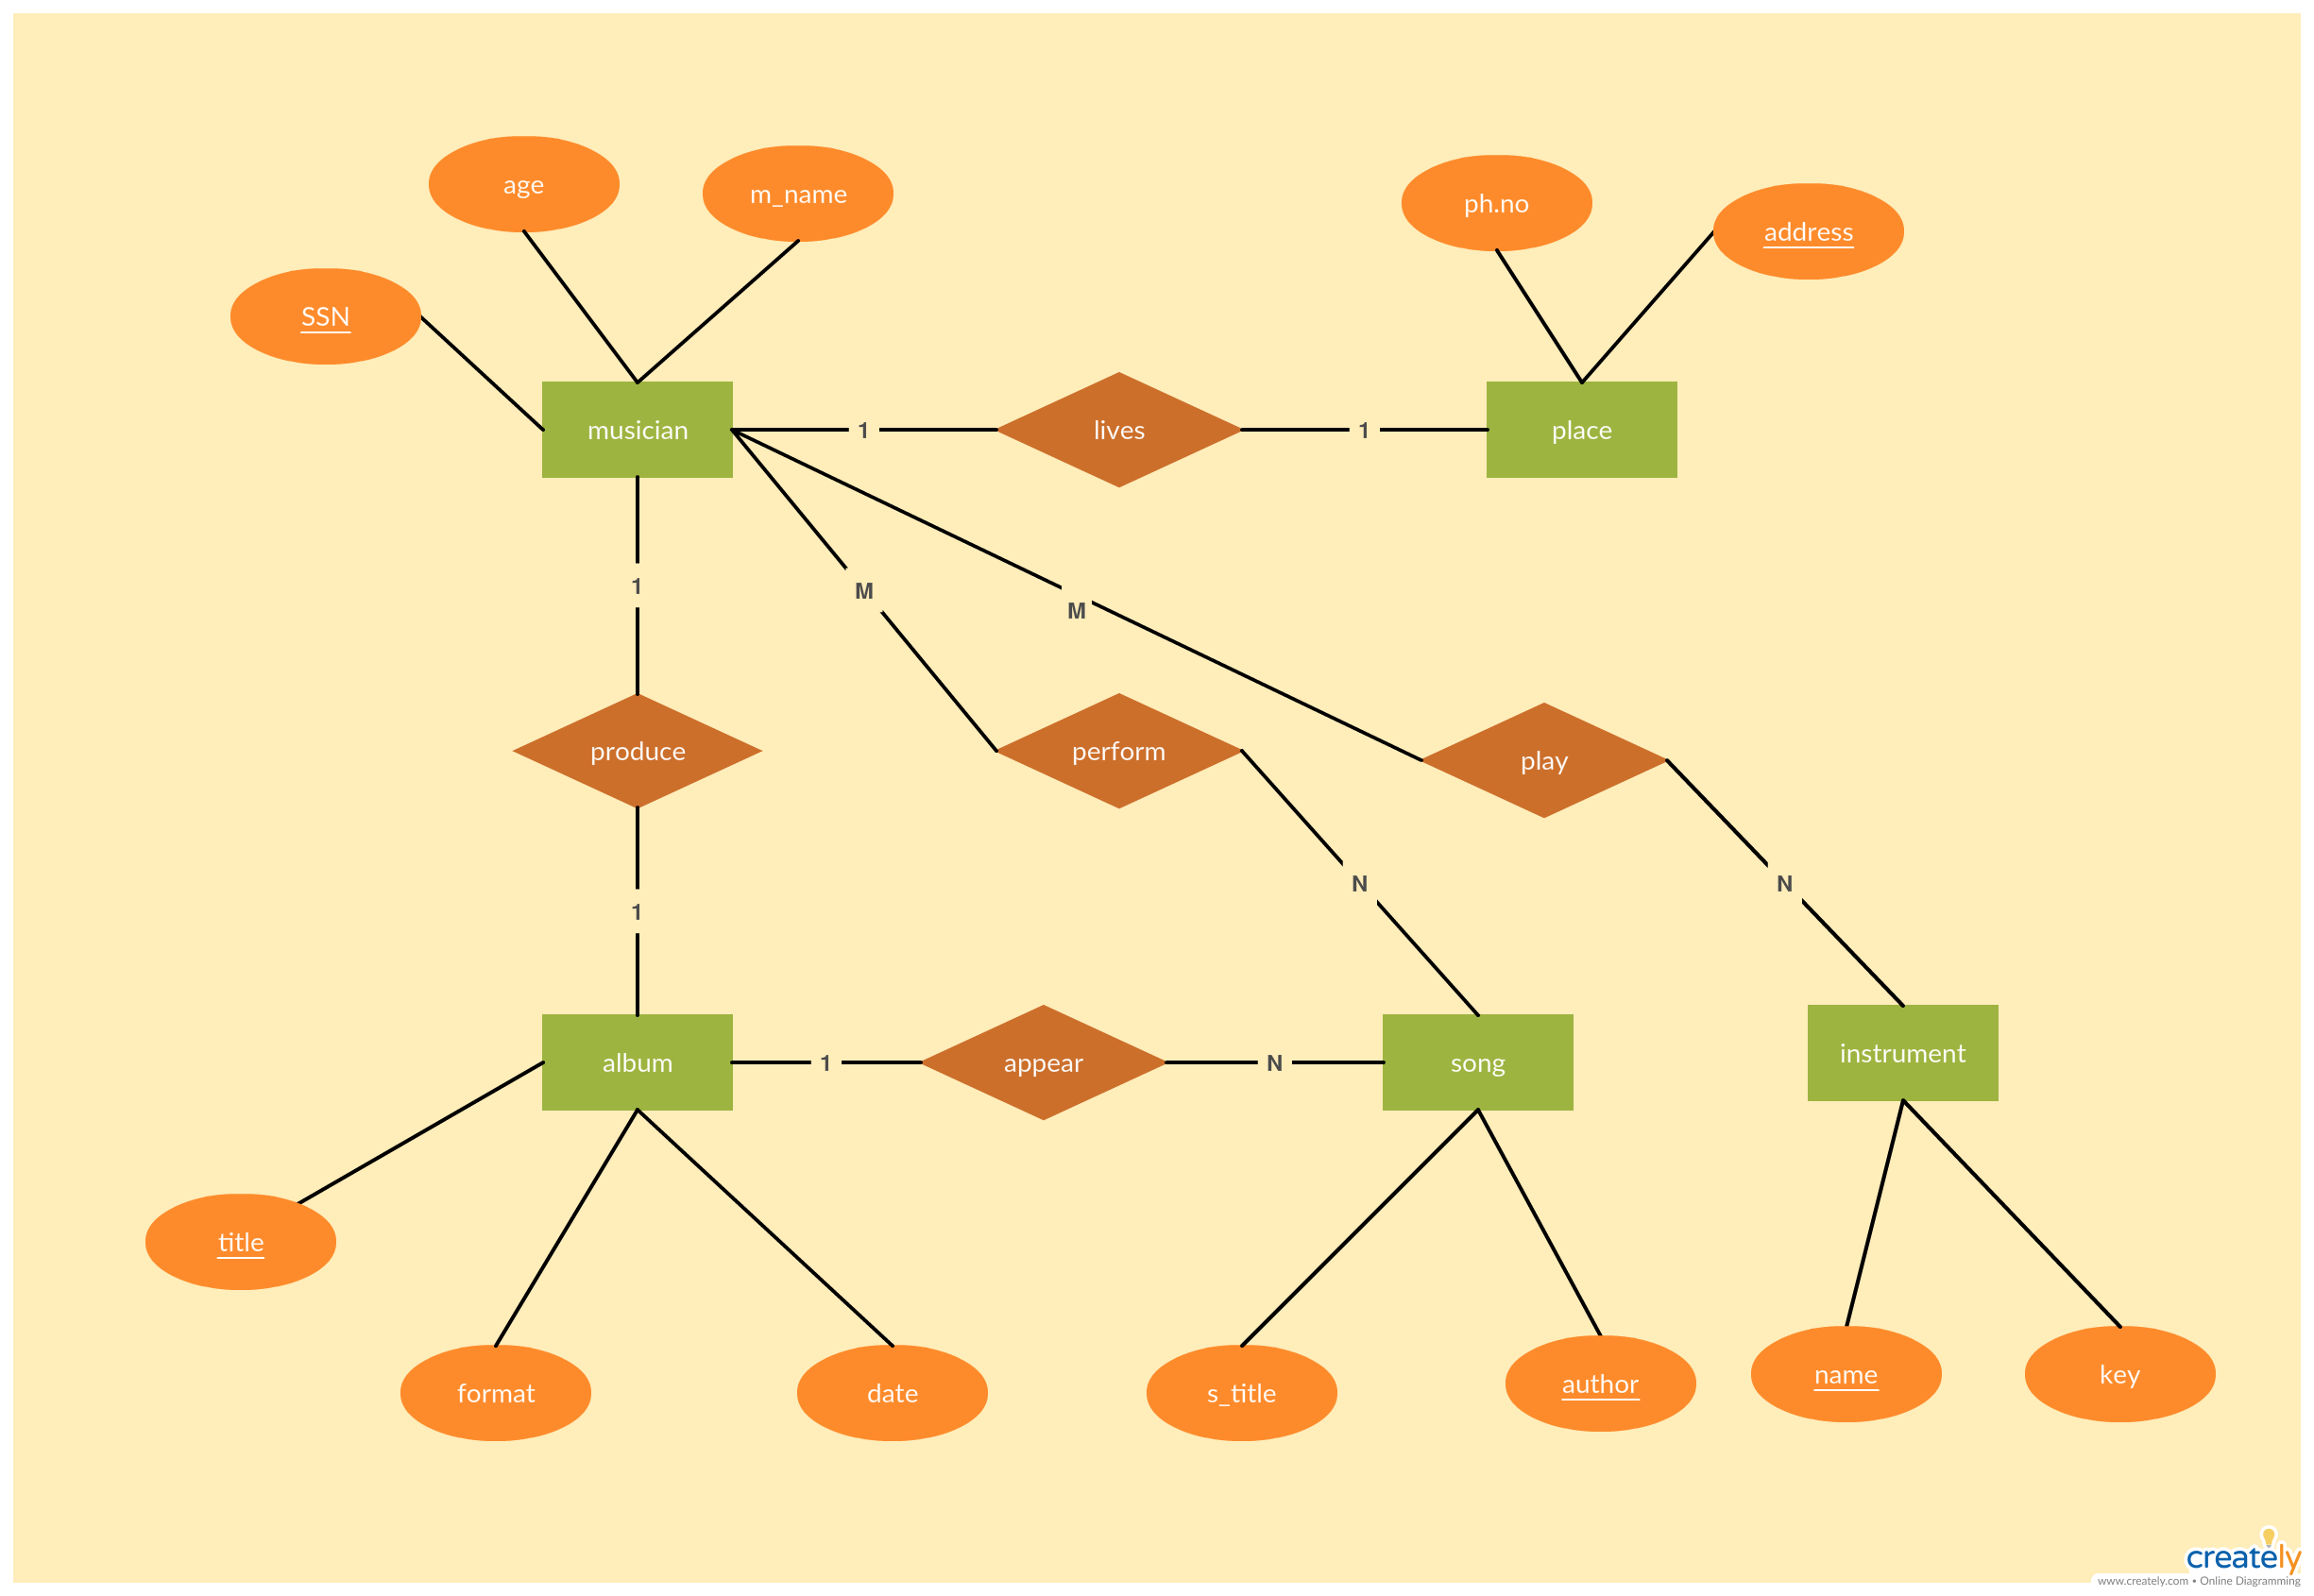 hight resolution of musician record entity relationship diagram example click the image to get all the important aspects